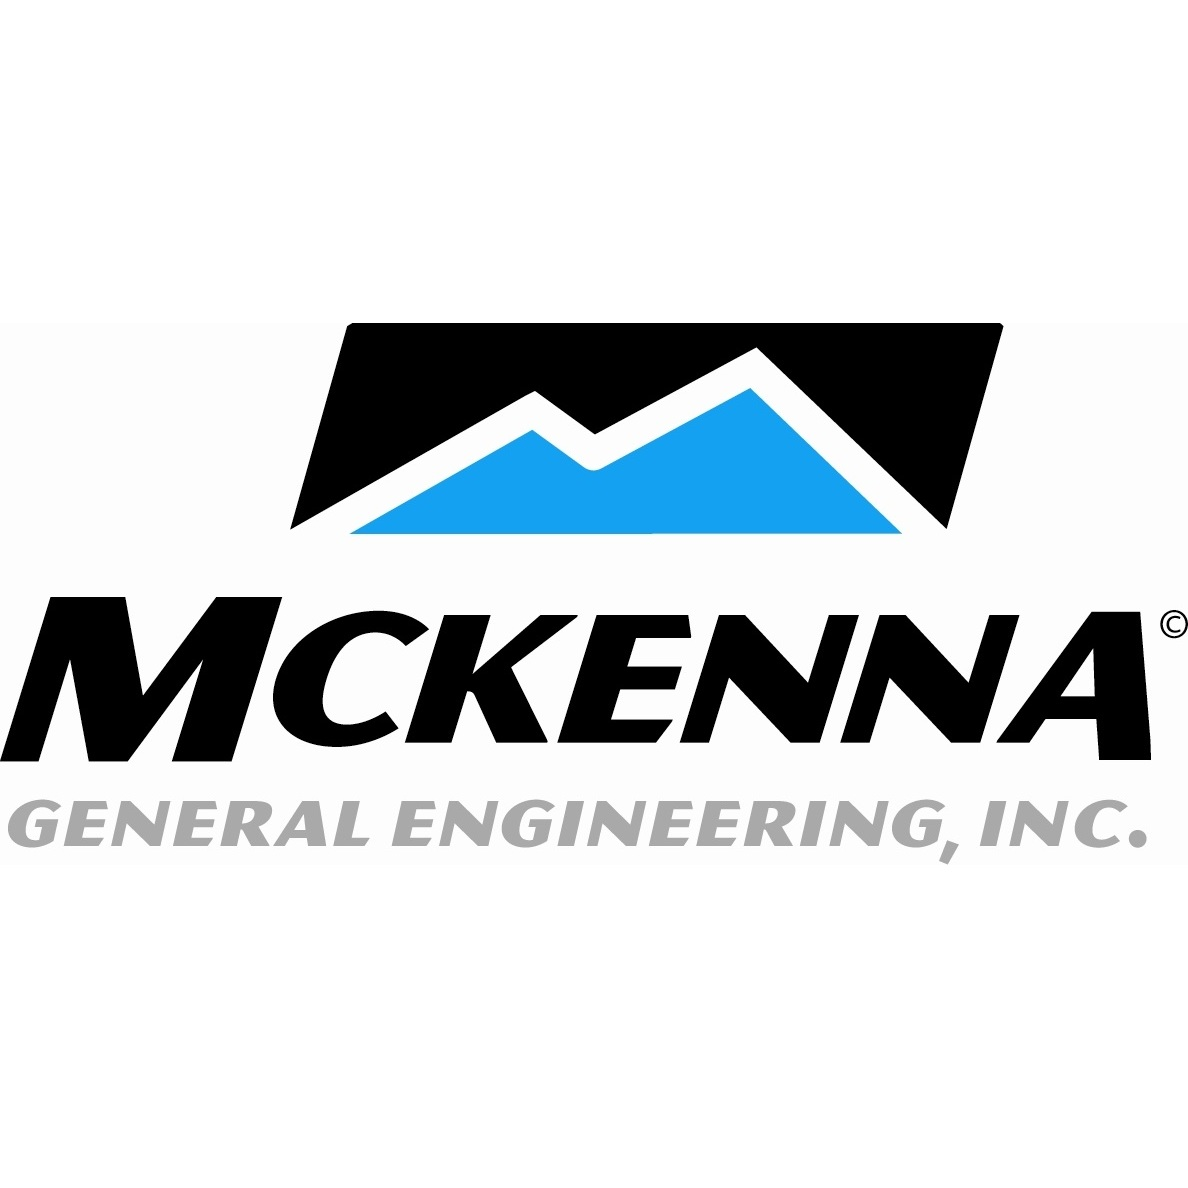 McKenna General Engineering, Inc.